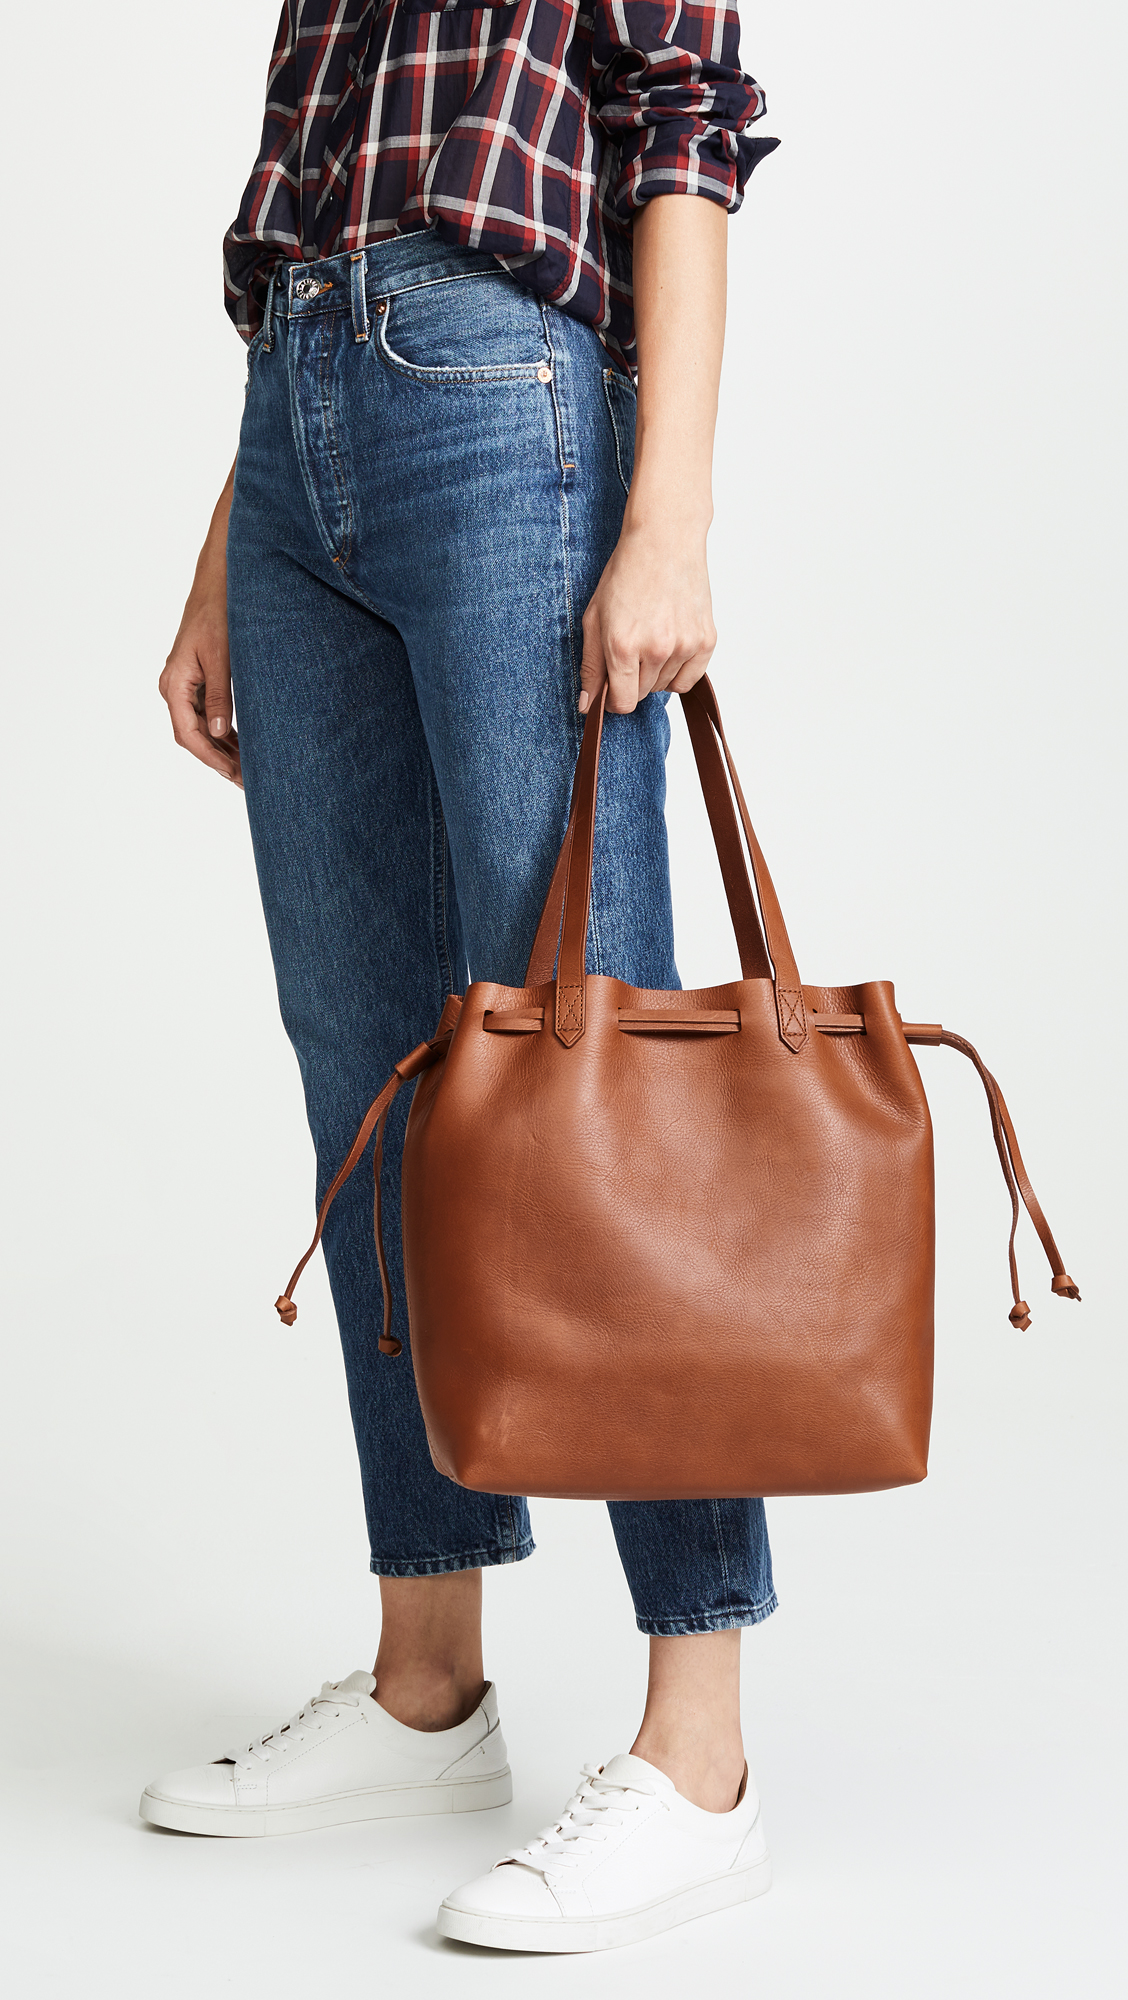 c4439c386f62 Madewell Medium Transport Tote Bag with Drawcord